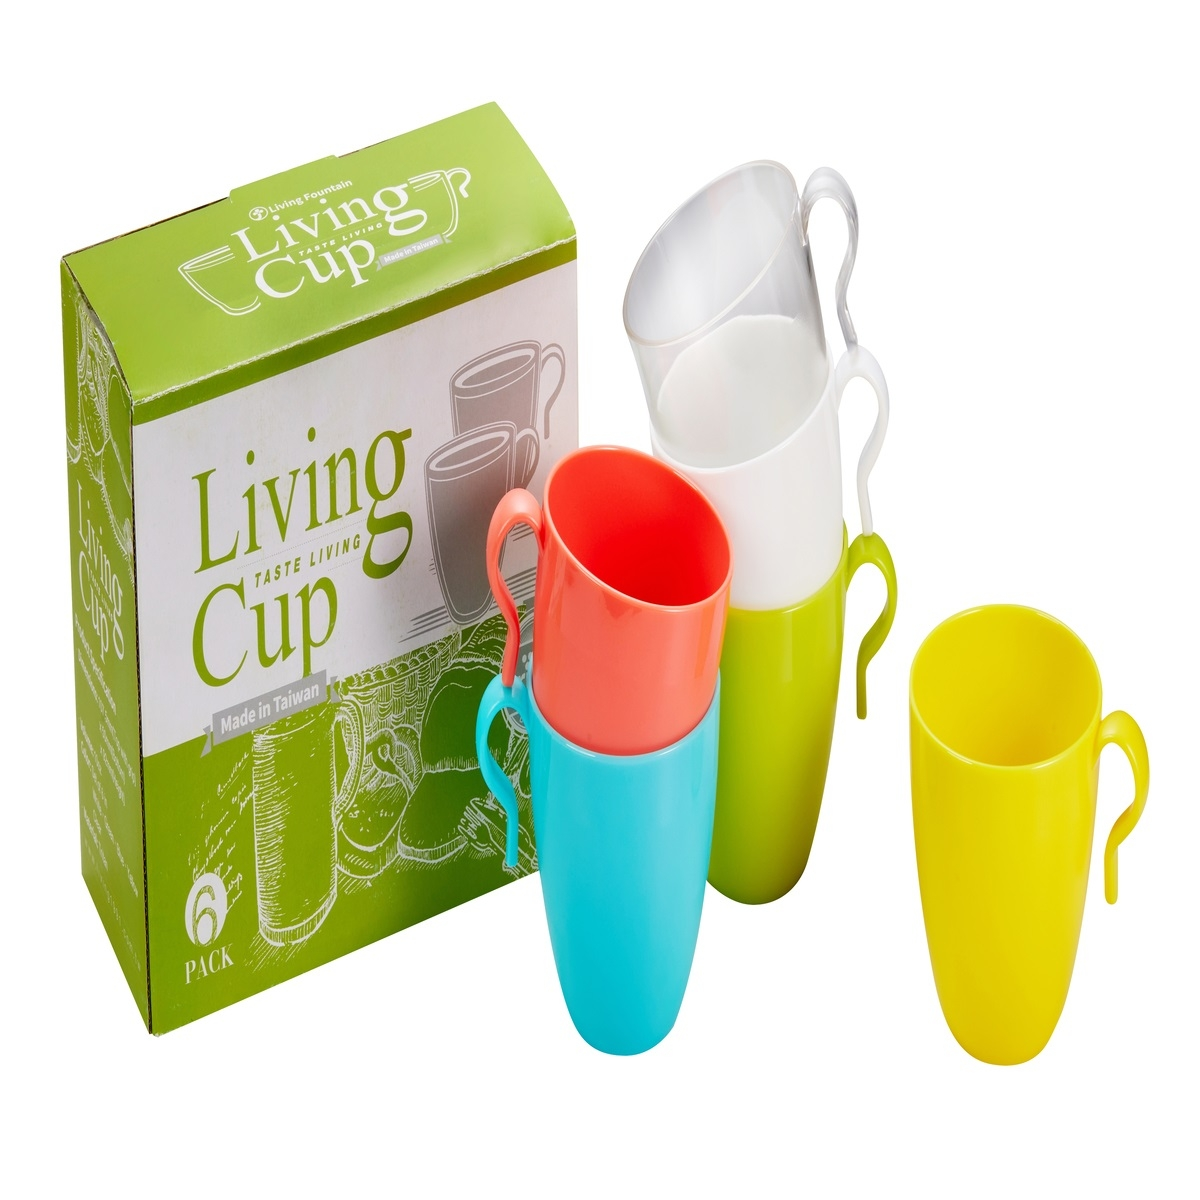 Living Cup